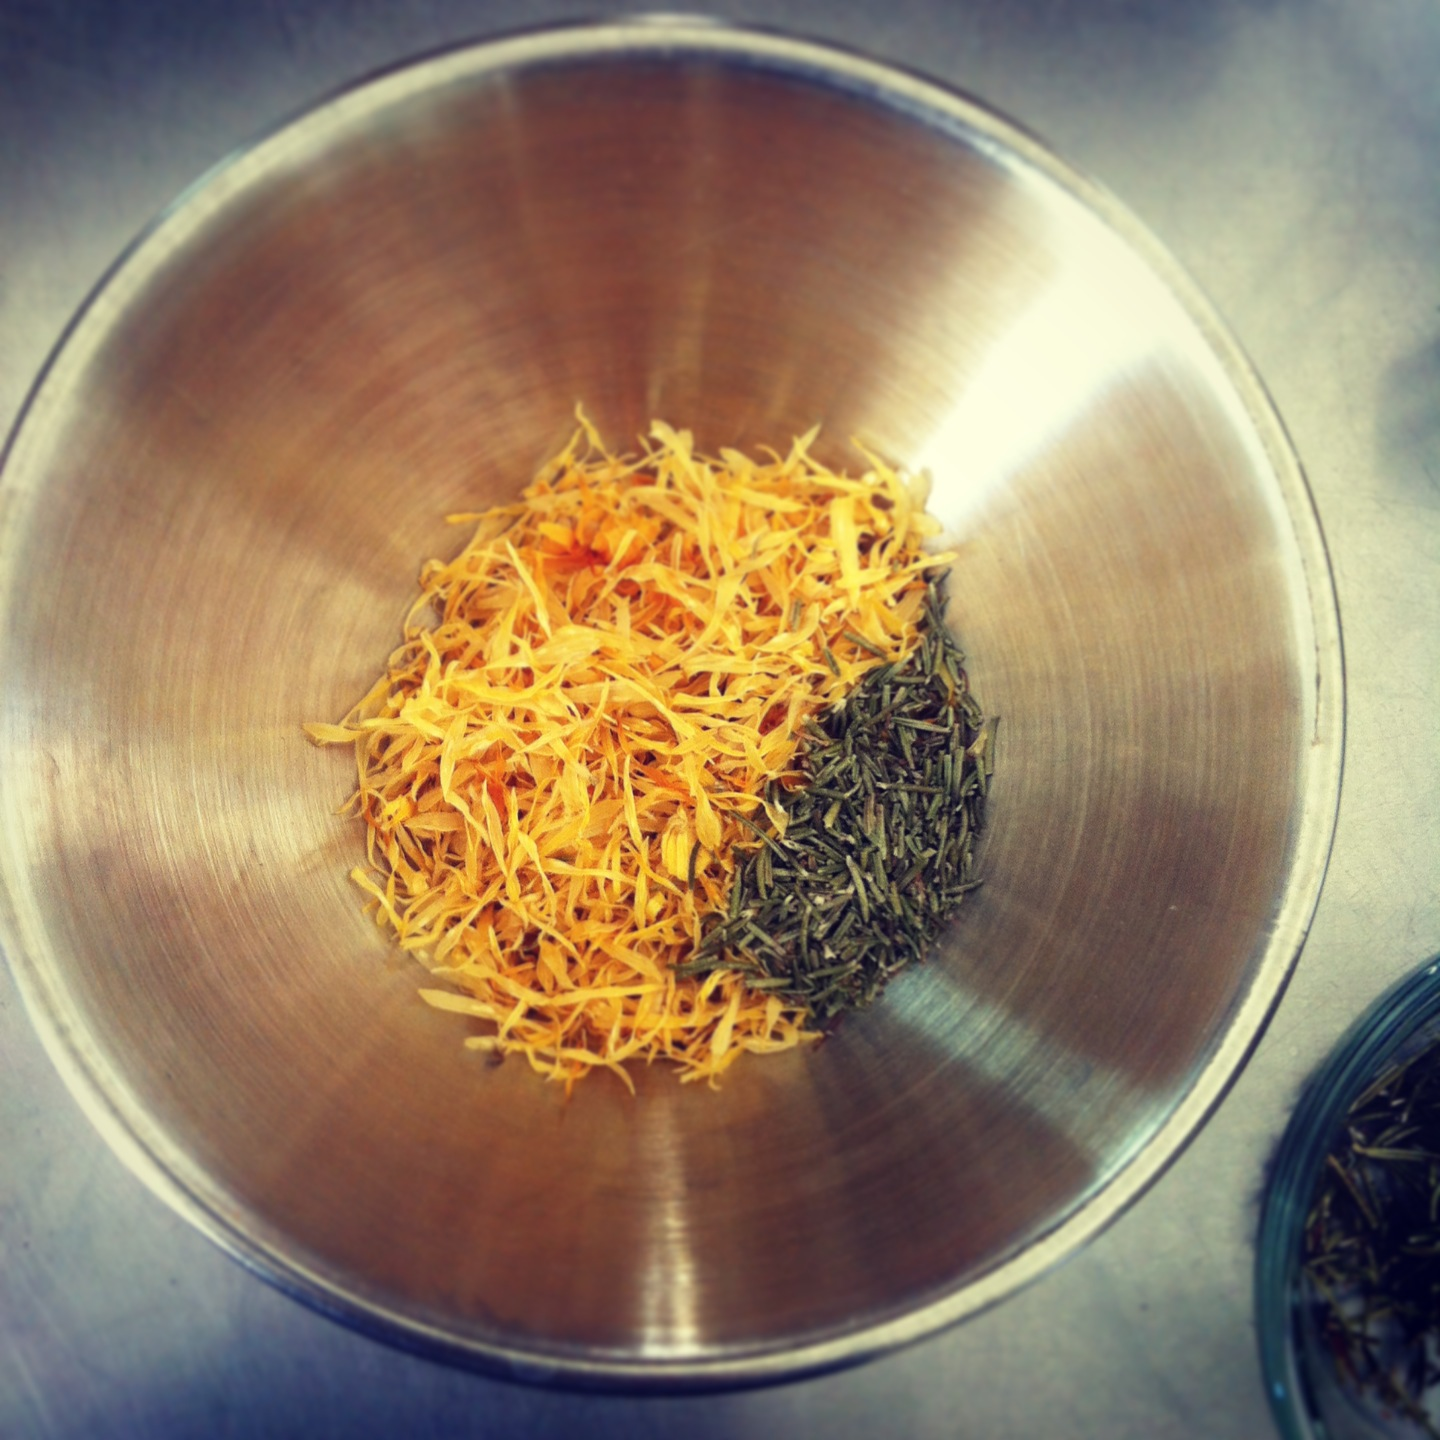 Calendula Blossoms and Rosemary Leaves